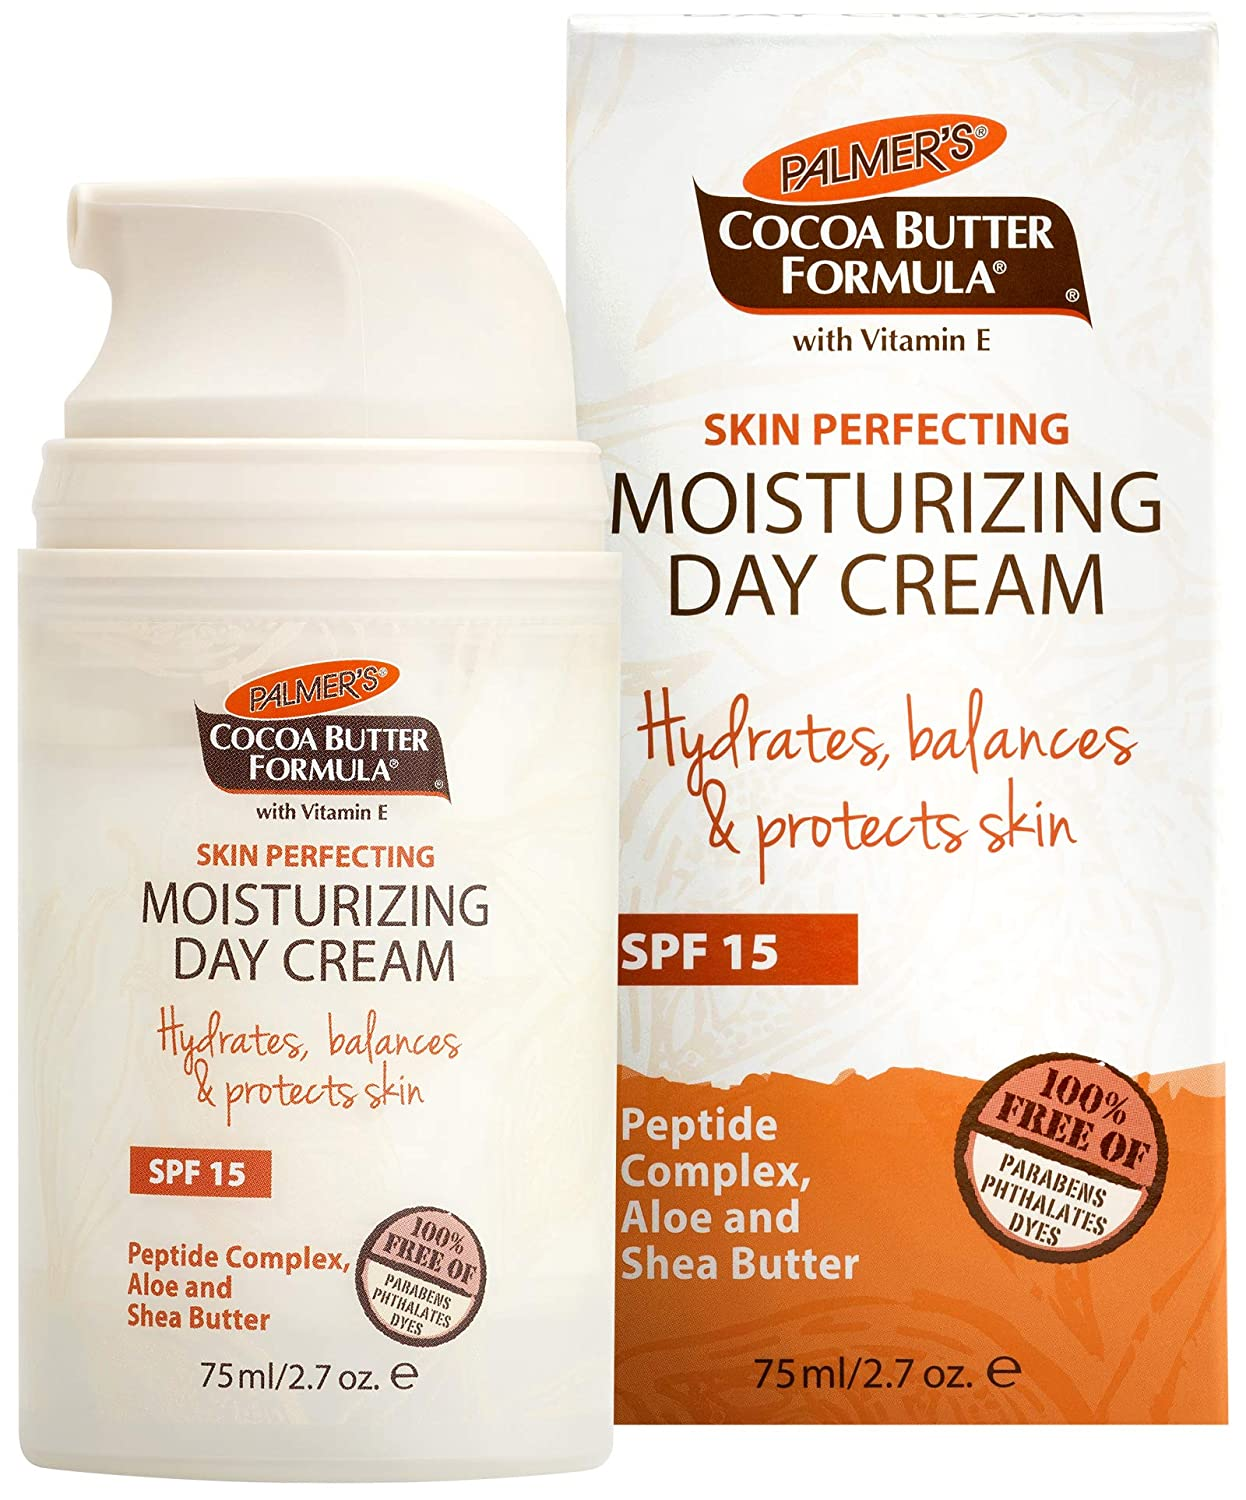 Palmer's Cocoa Butter Formula Skin Perfecting Moisturizing Day Cream, SPF 15